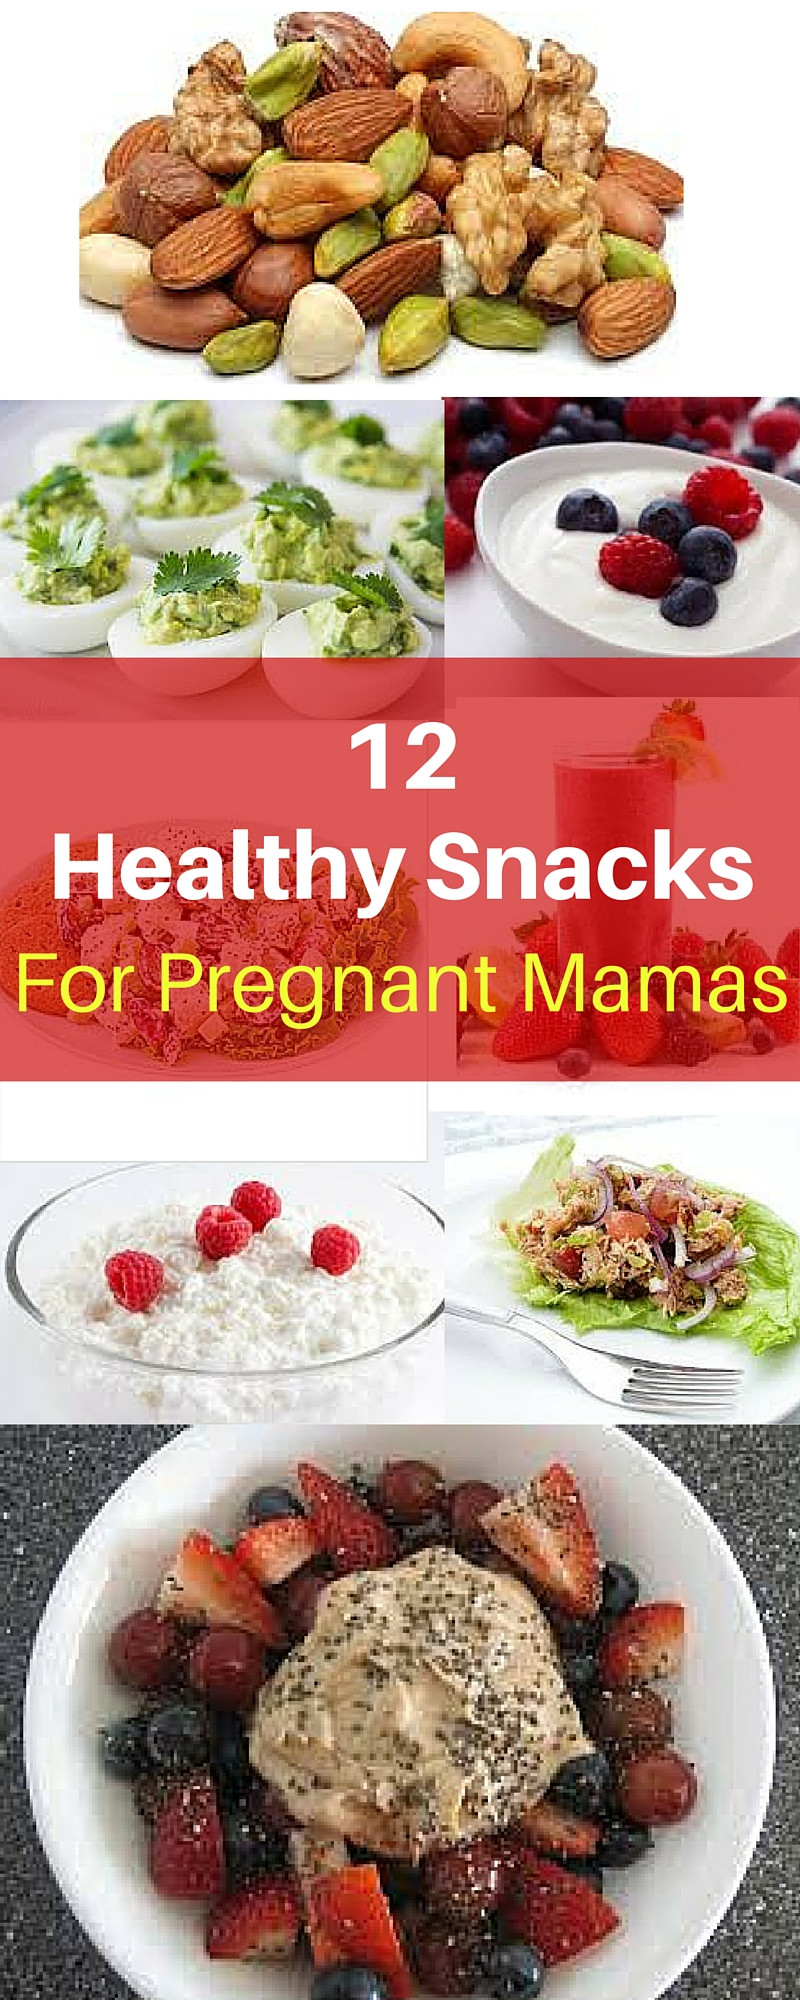 Healthy Snacks During Pregnancy 10 Healthy Snacks For Pregnant Mamas Michelle Marie Fit